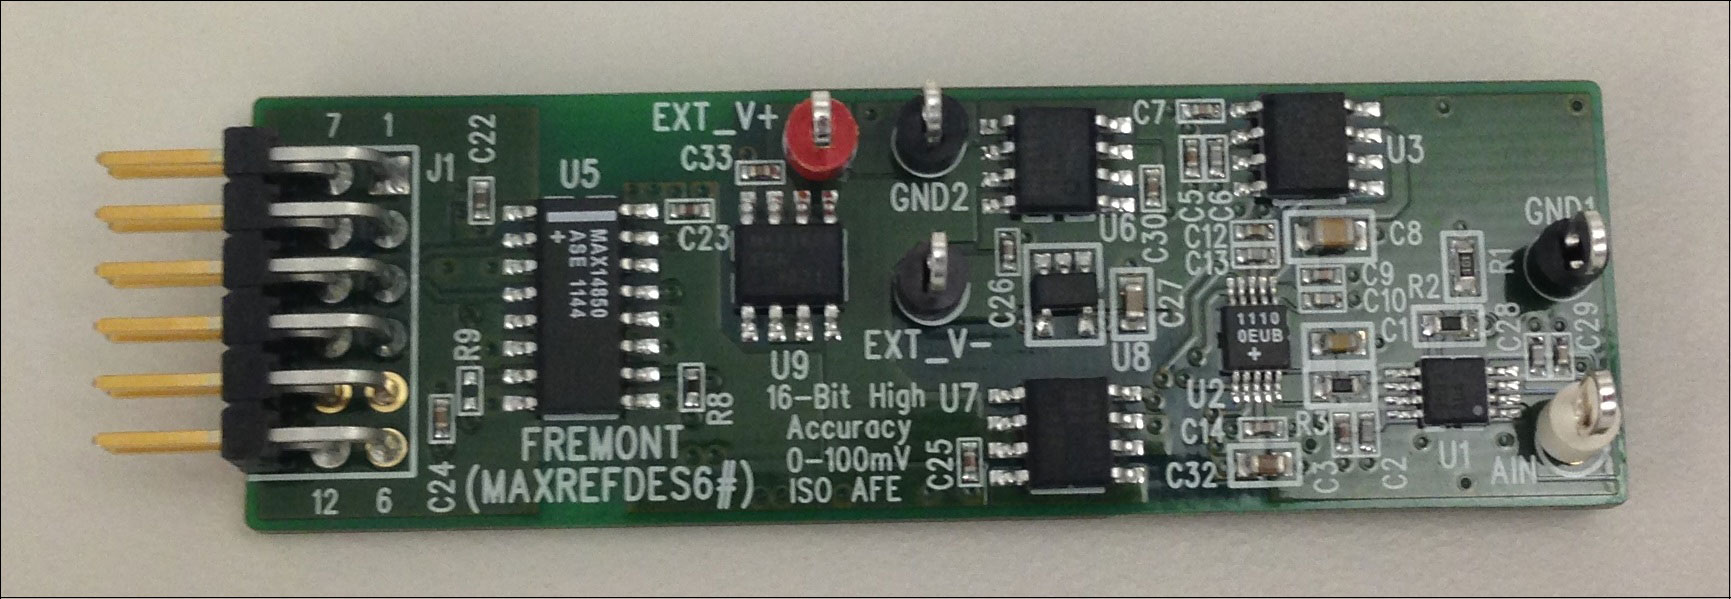 Adc Hardware Block Diagram Embedded Lab Fremont Maxrefdes6 16 Bit High Accuracy 0 To 100mv Input Smart Factories